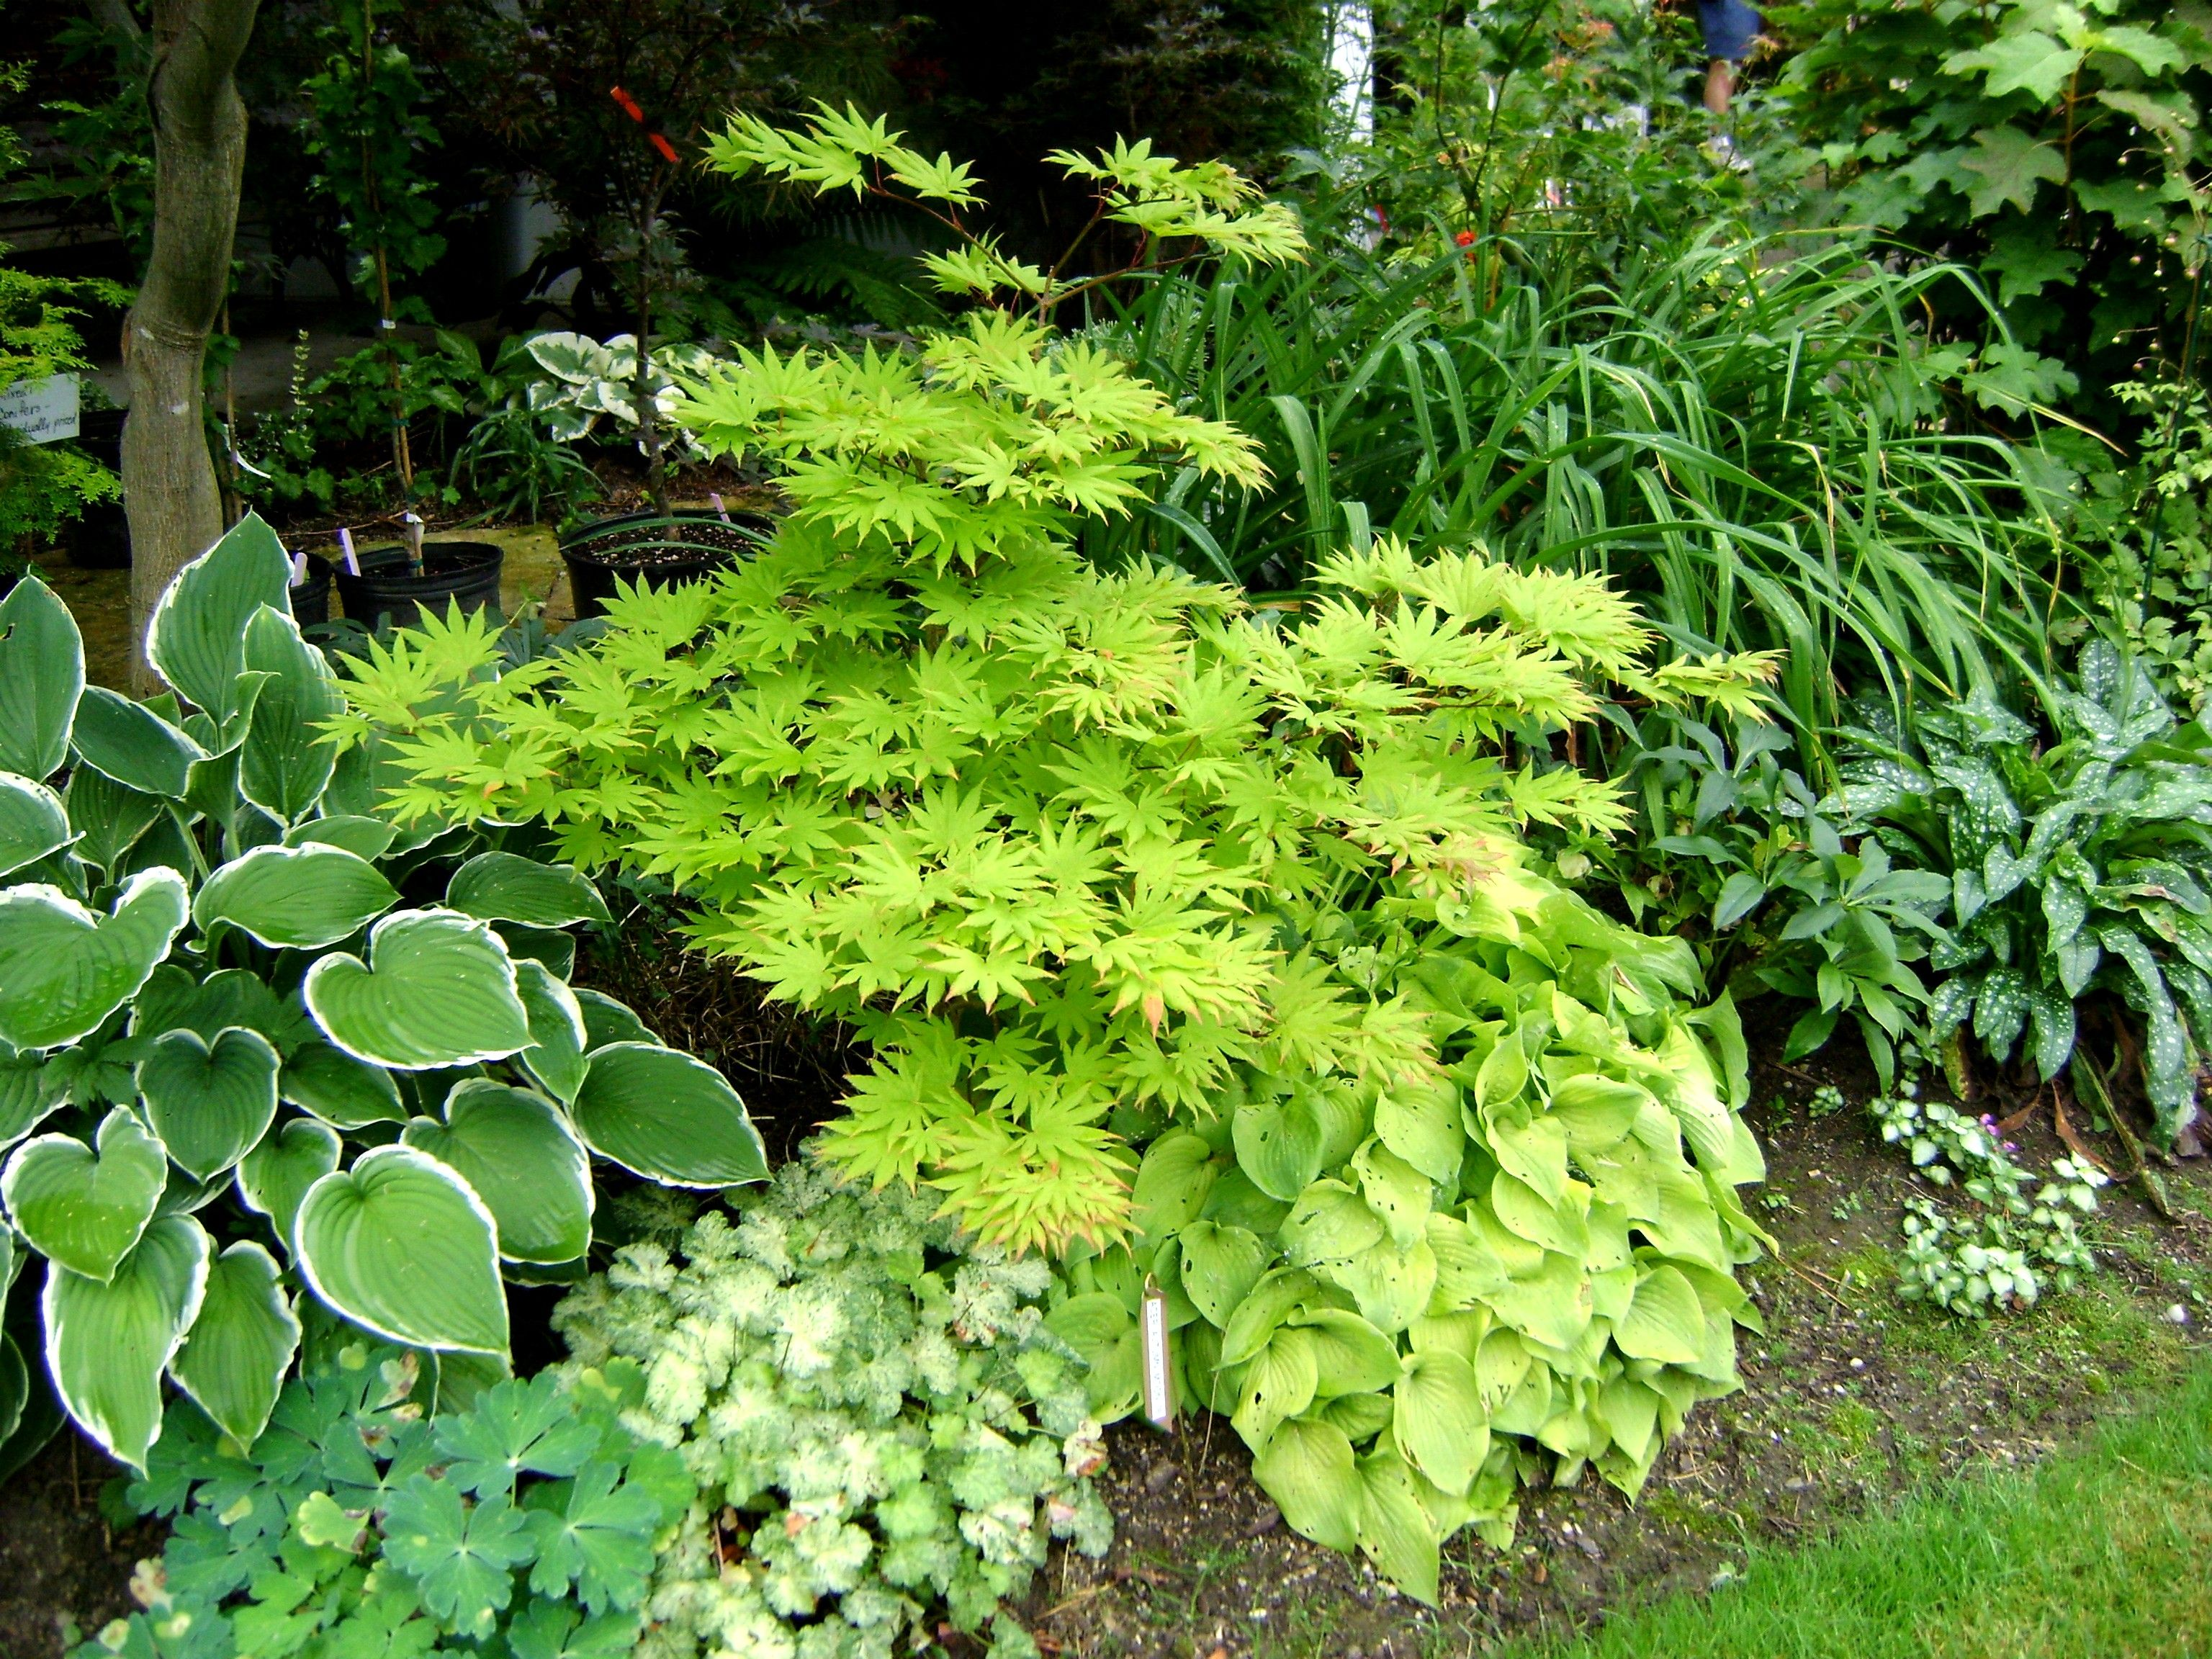 How to care for a fern leaf japanese maple - Underplanting Japanese Maples Bing Images